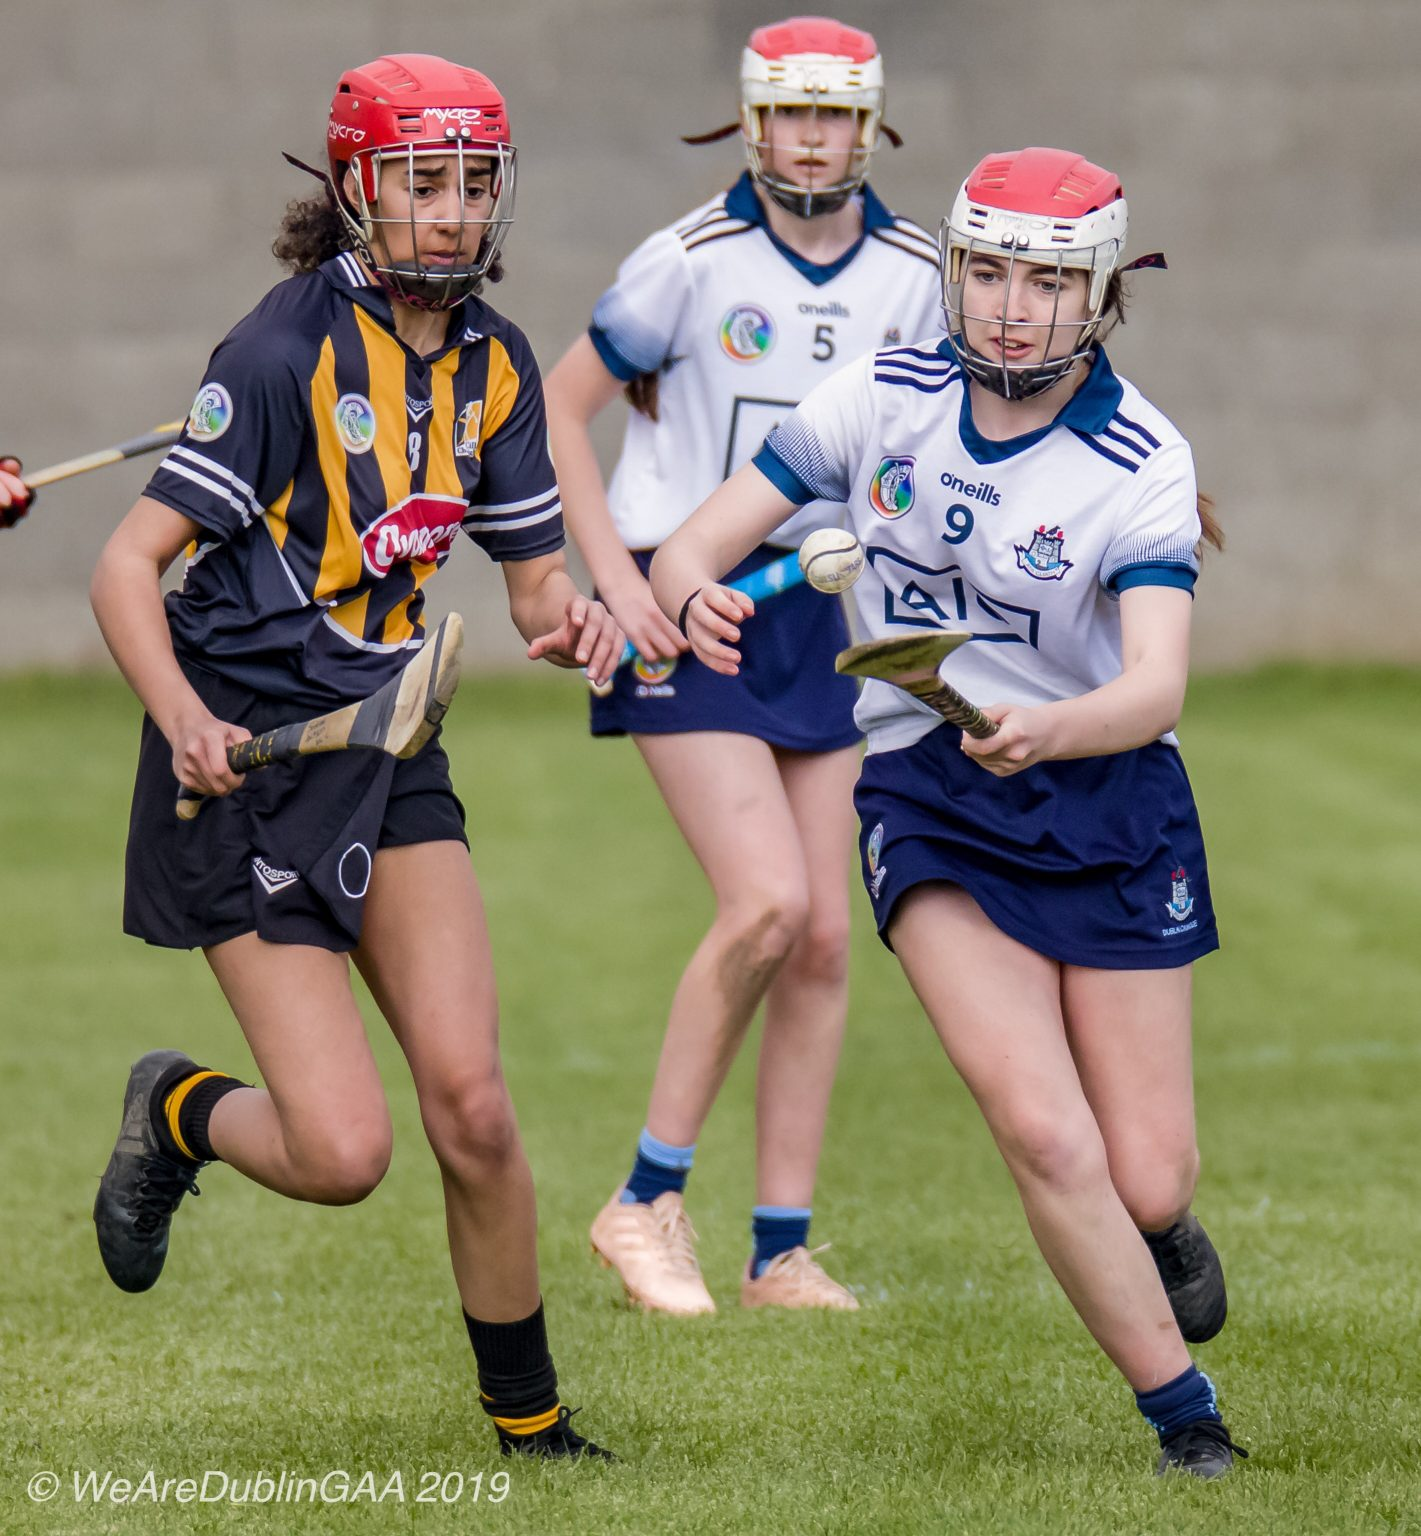 Dublin U16A Camogie Player In a White jersey with navy trim on the sleeves, navy collar and red and white helmet balances the ball on her hurl as she gets away from a kilkenny player in an Amber and black striped jersey, black skort and red helmet